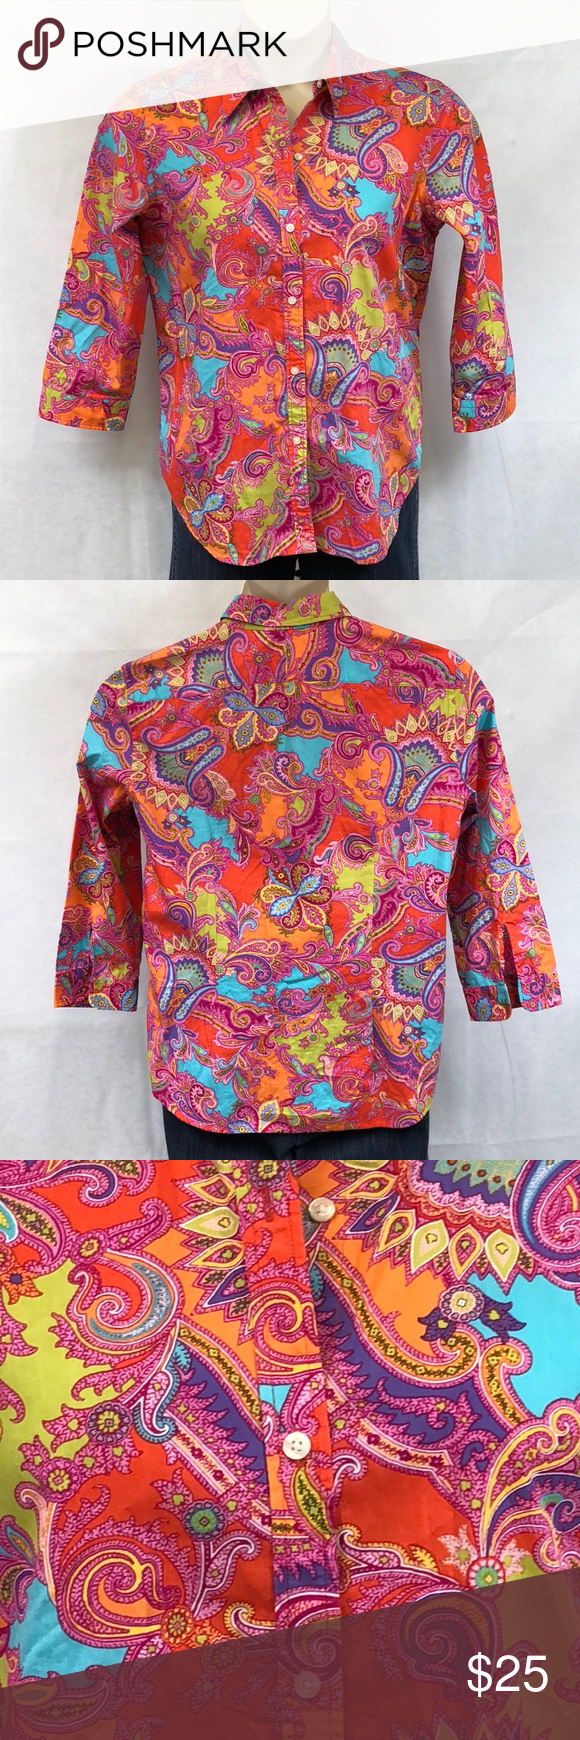 f2eb2610 Chaps paisley button down cotton shirt Fun and vibrant colored paisley  print button down shirt. 3/4 sleeves 100% cotton. VGUC Chaps Tops Button  Down Shirts